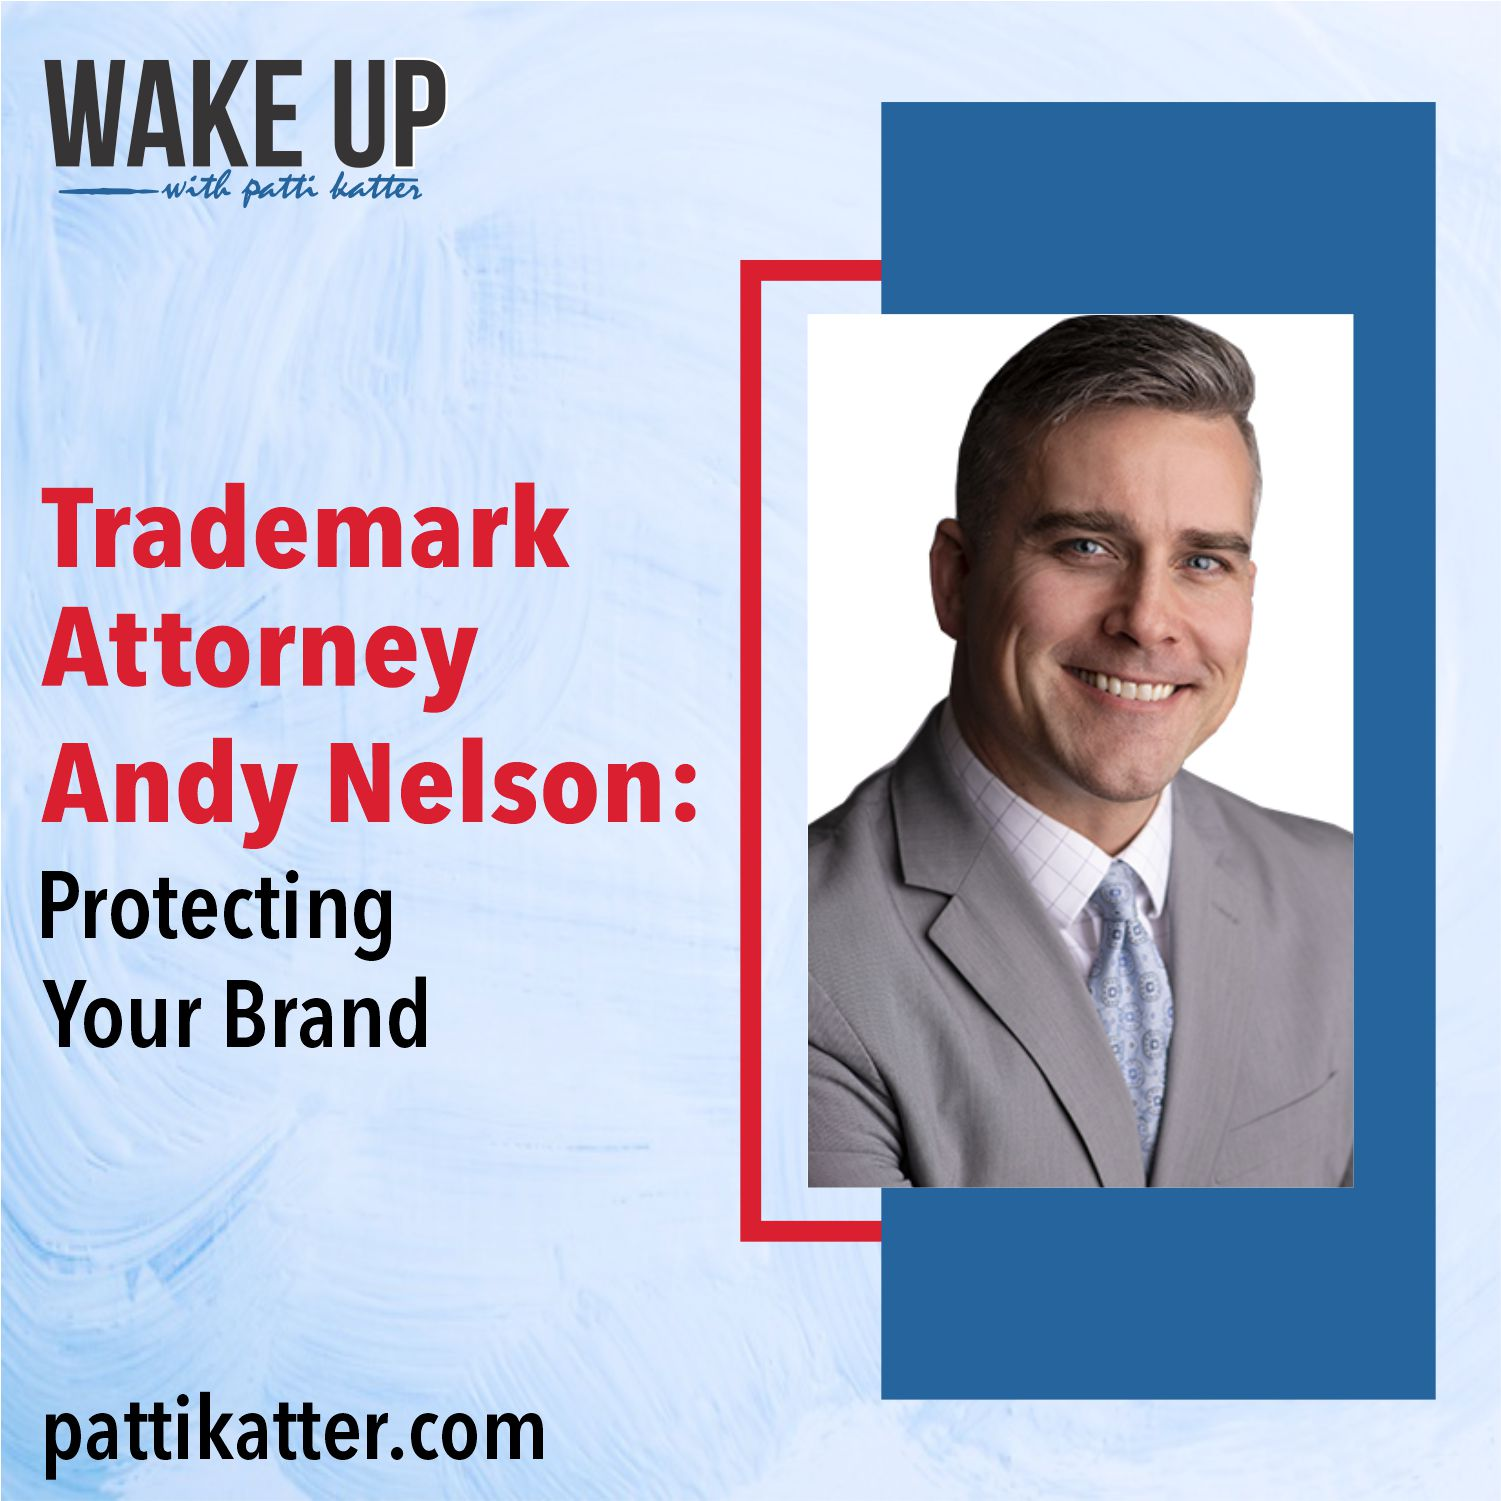 Trademark Attorney Andy Nelson: Protecting Your Brand